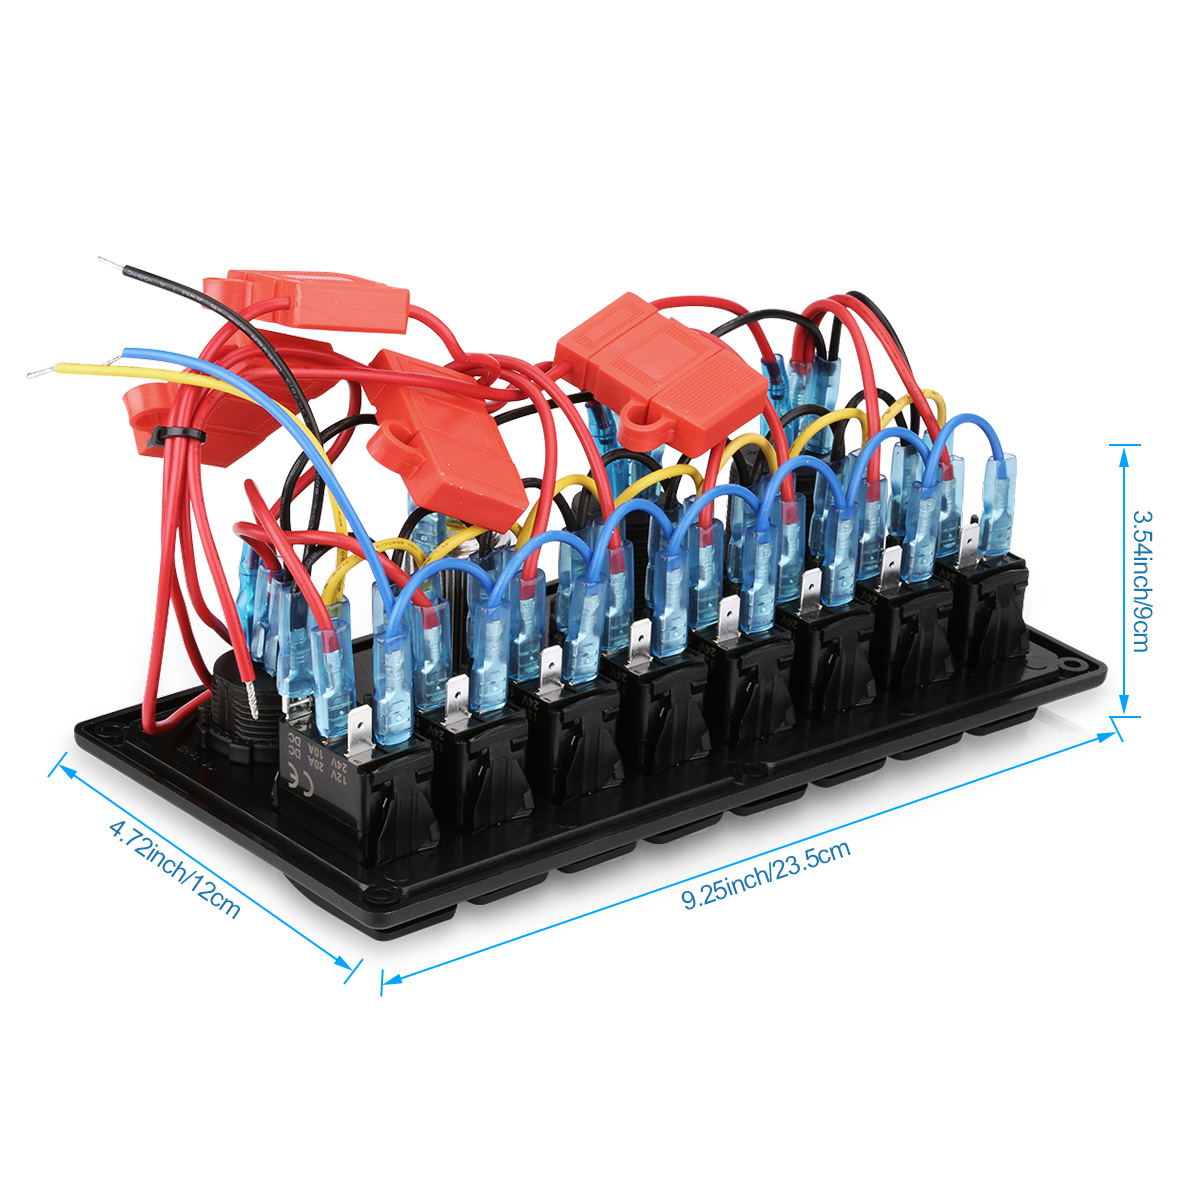 4 Gang 12v Switch Panel Wiring Diagram Electrical Diagrams Excelvan 8 Led Rocker Digital Voltmeter Double Usb Four Circuits